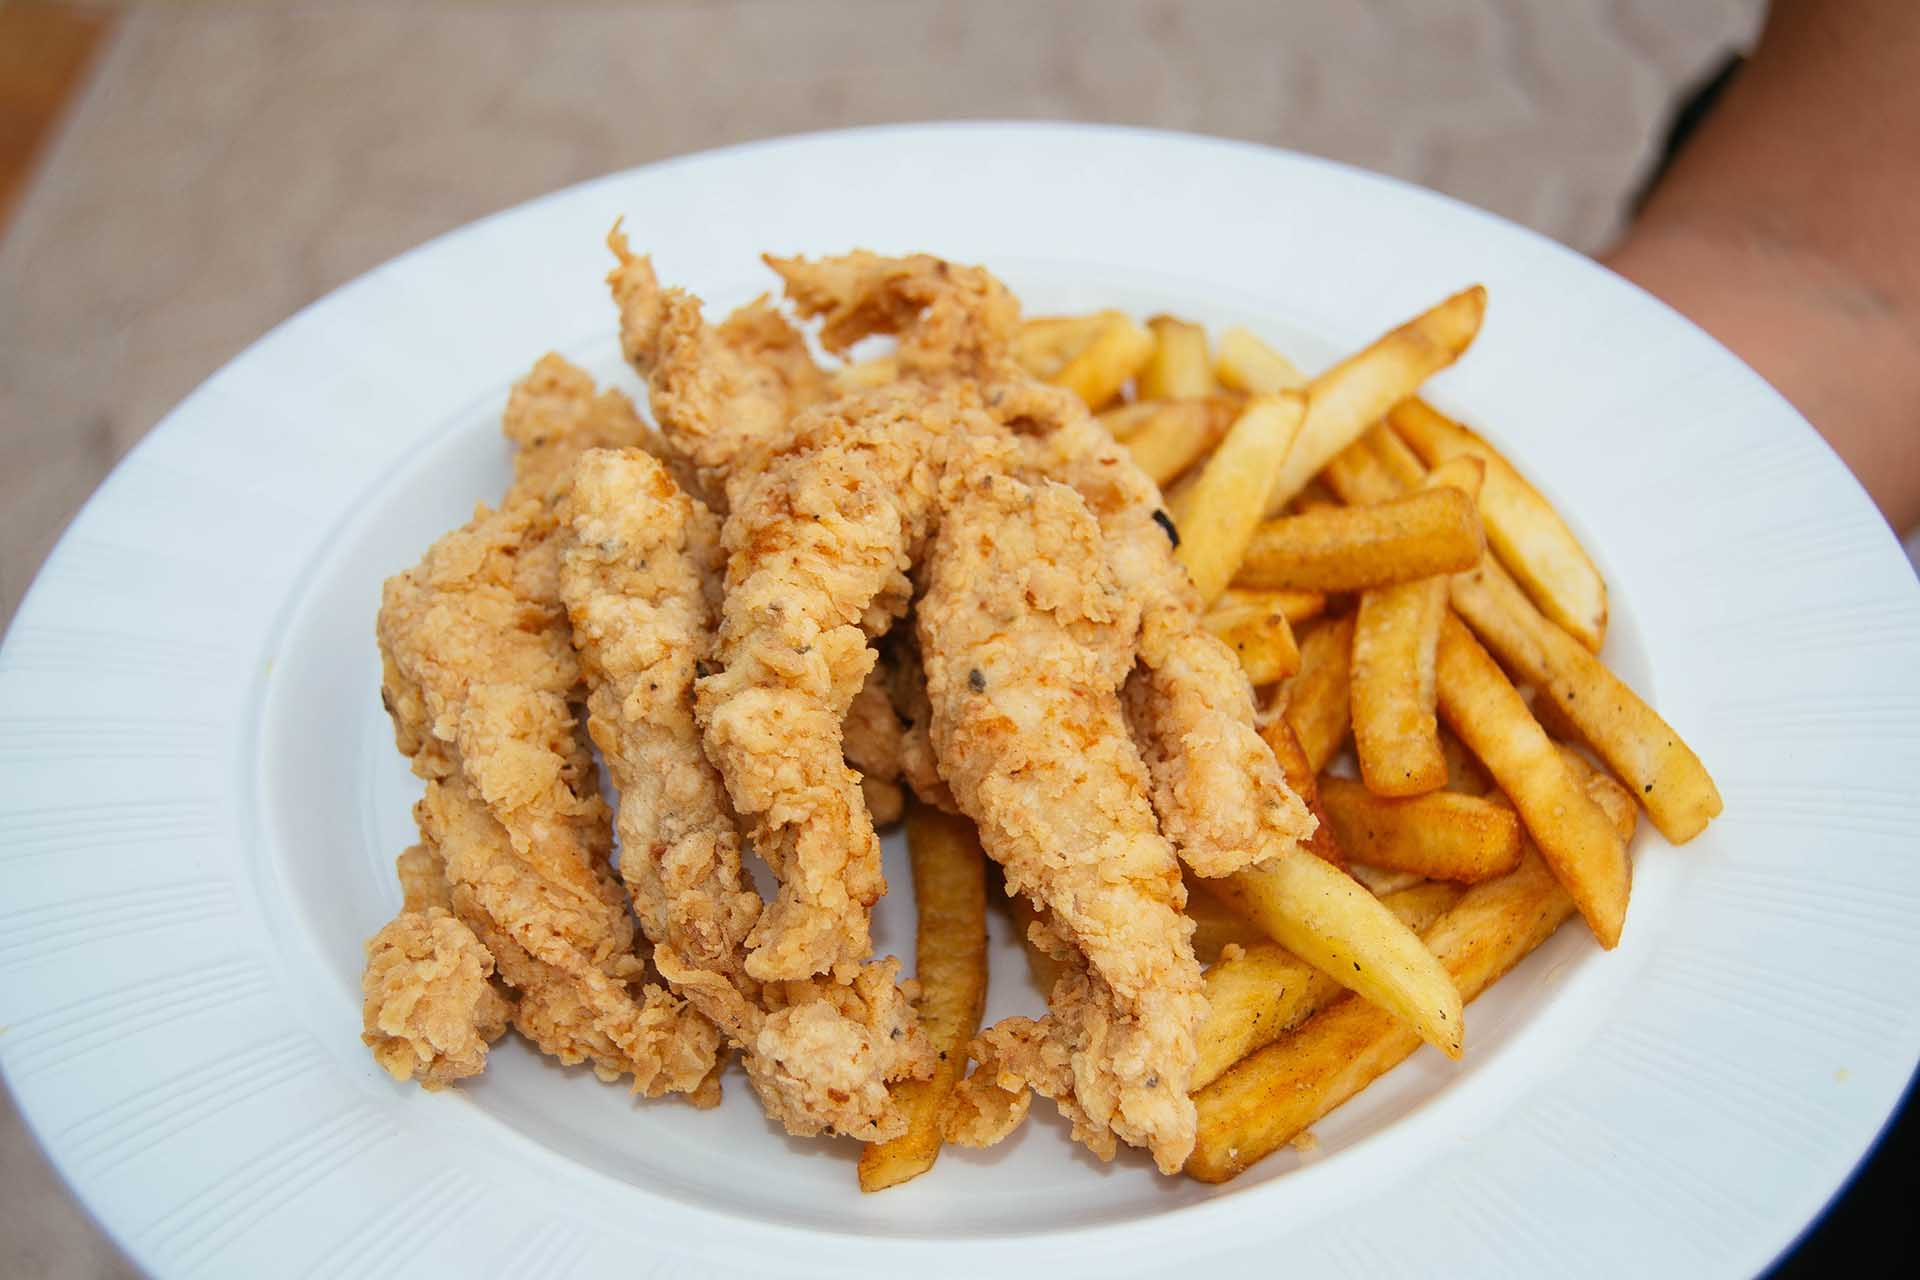 Rumors-resort-Chicken Fingers